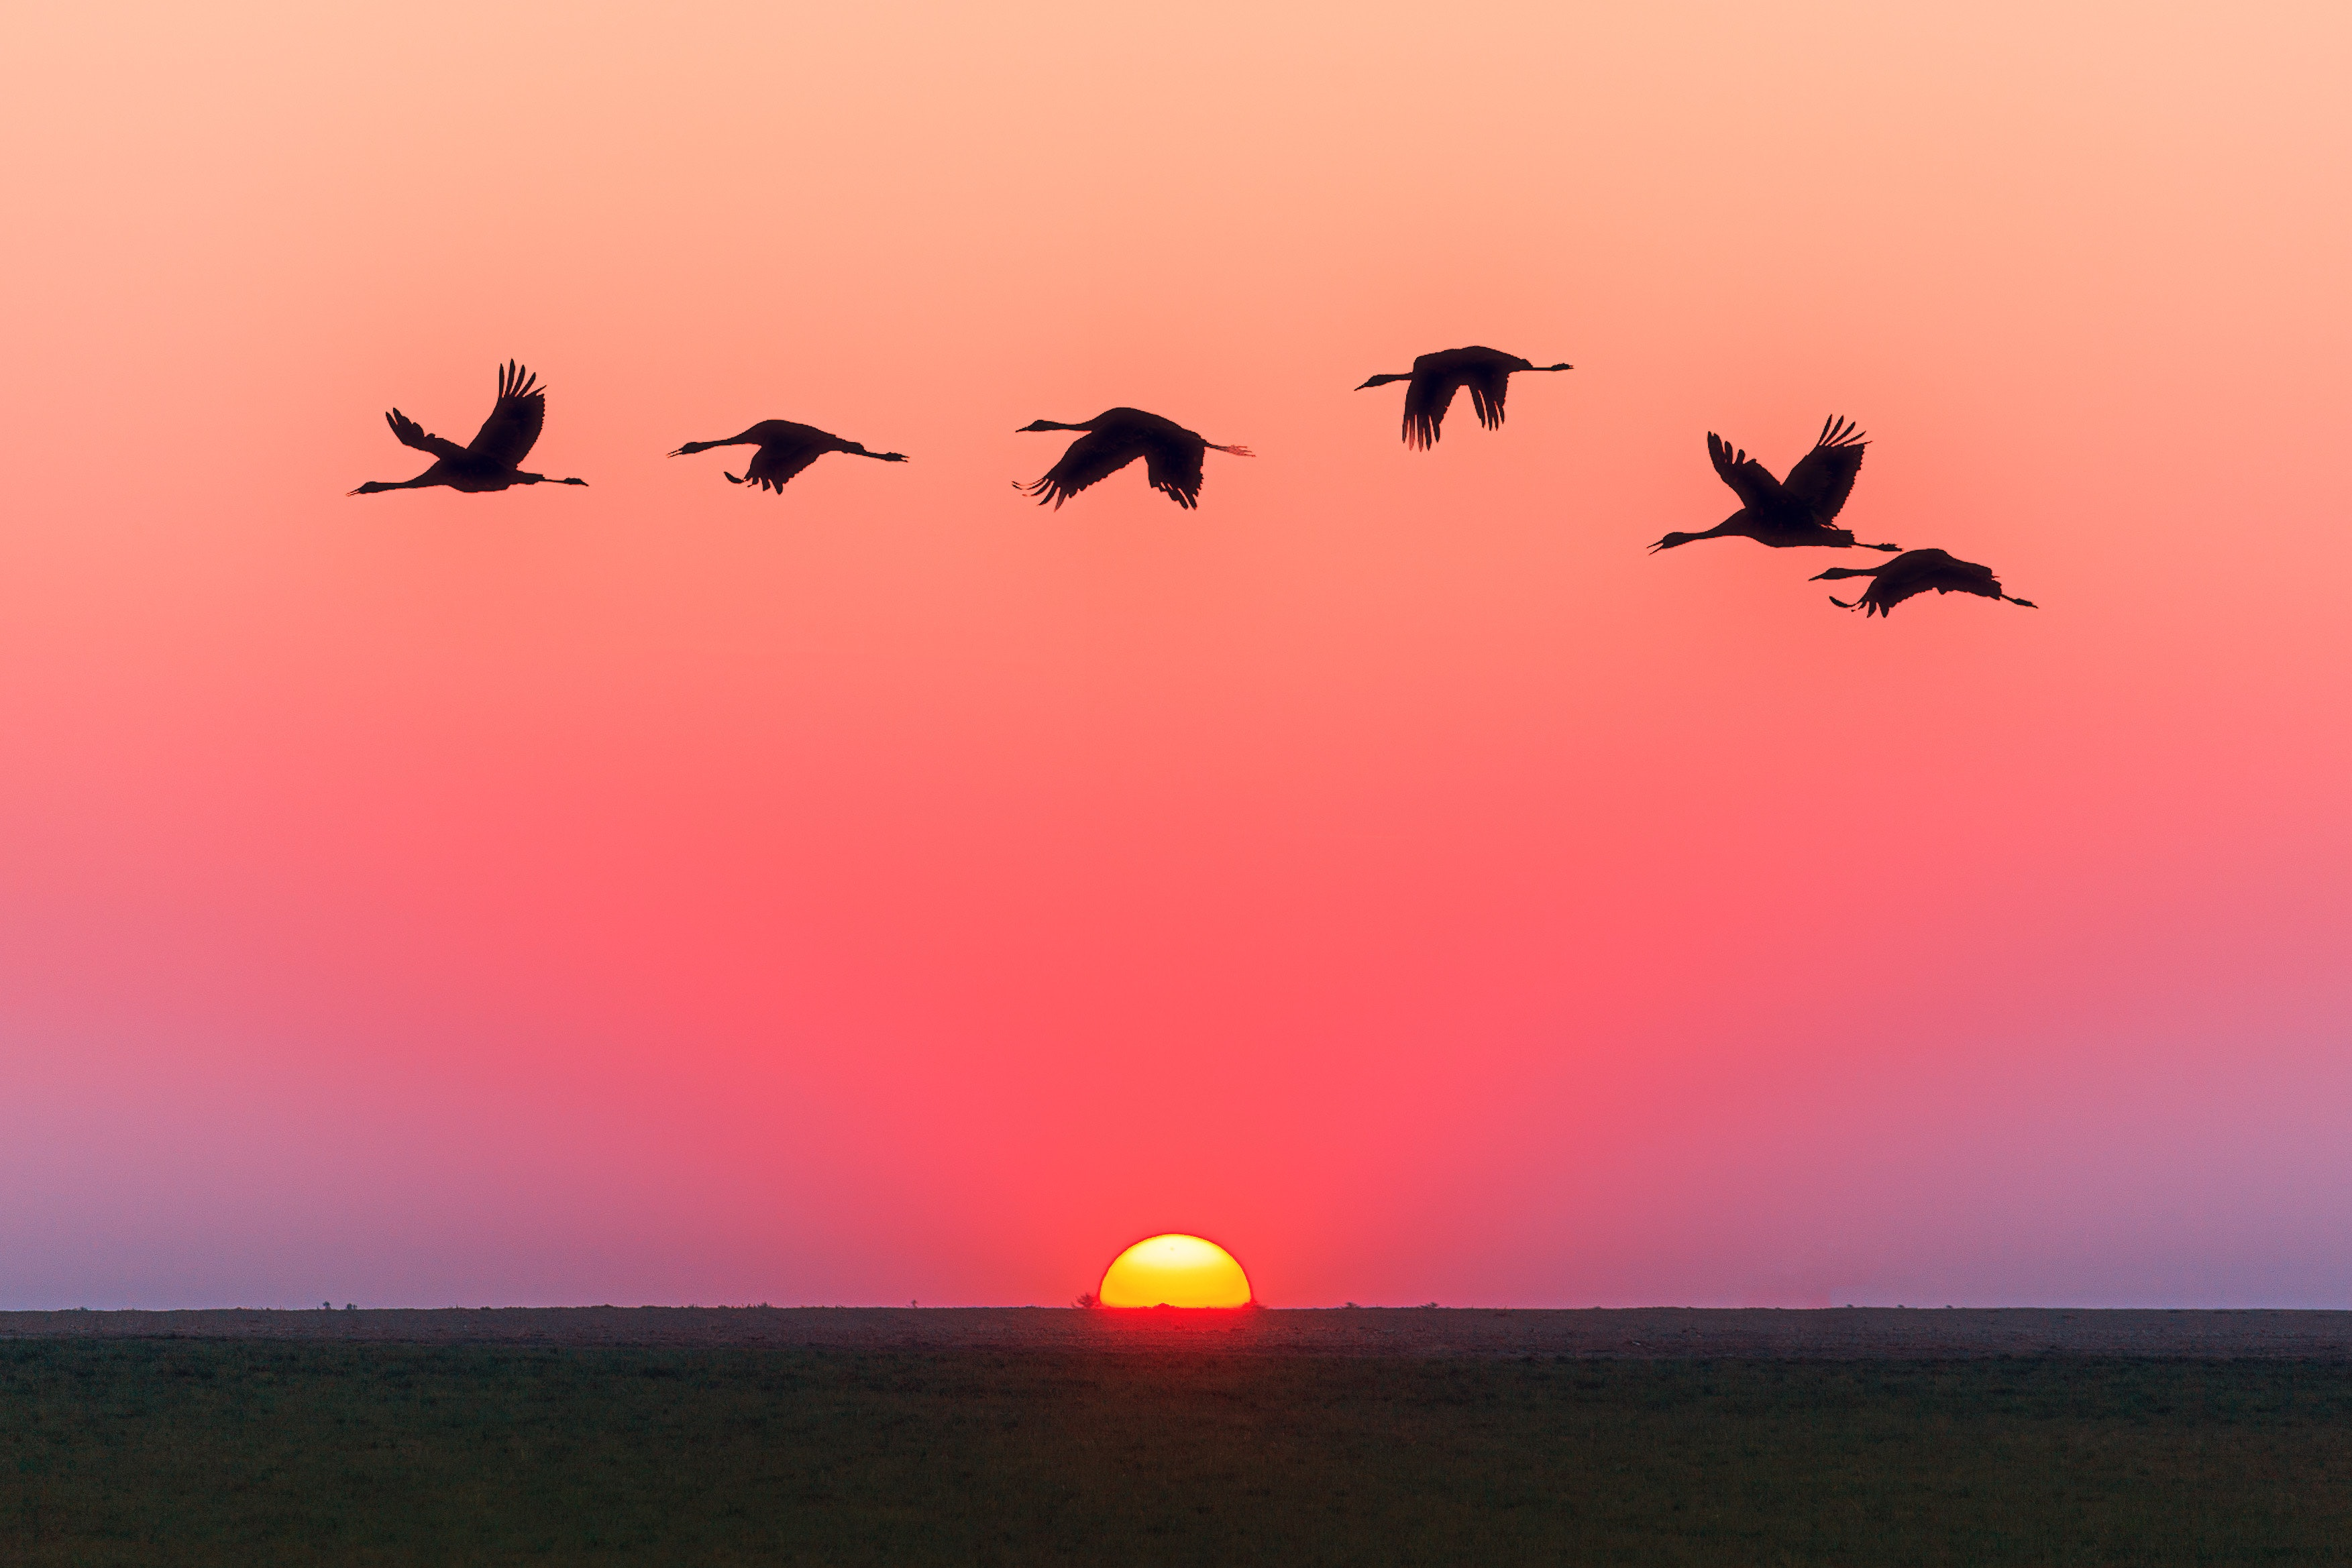 Birds 4k Wallpapers For Your Desktop Or Mobile Screen Free And Easy To Download